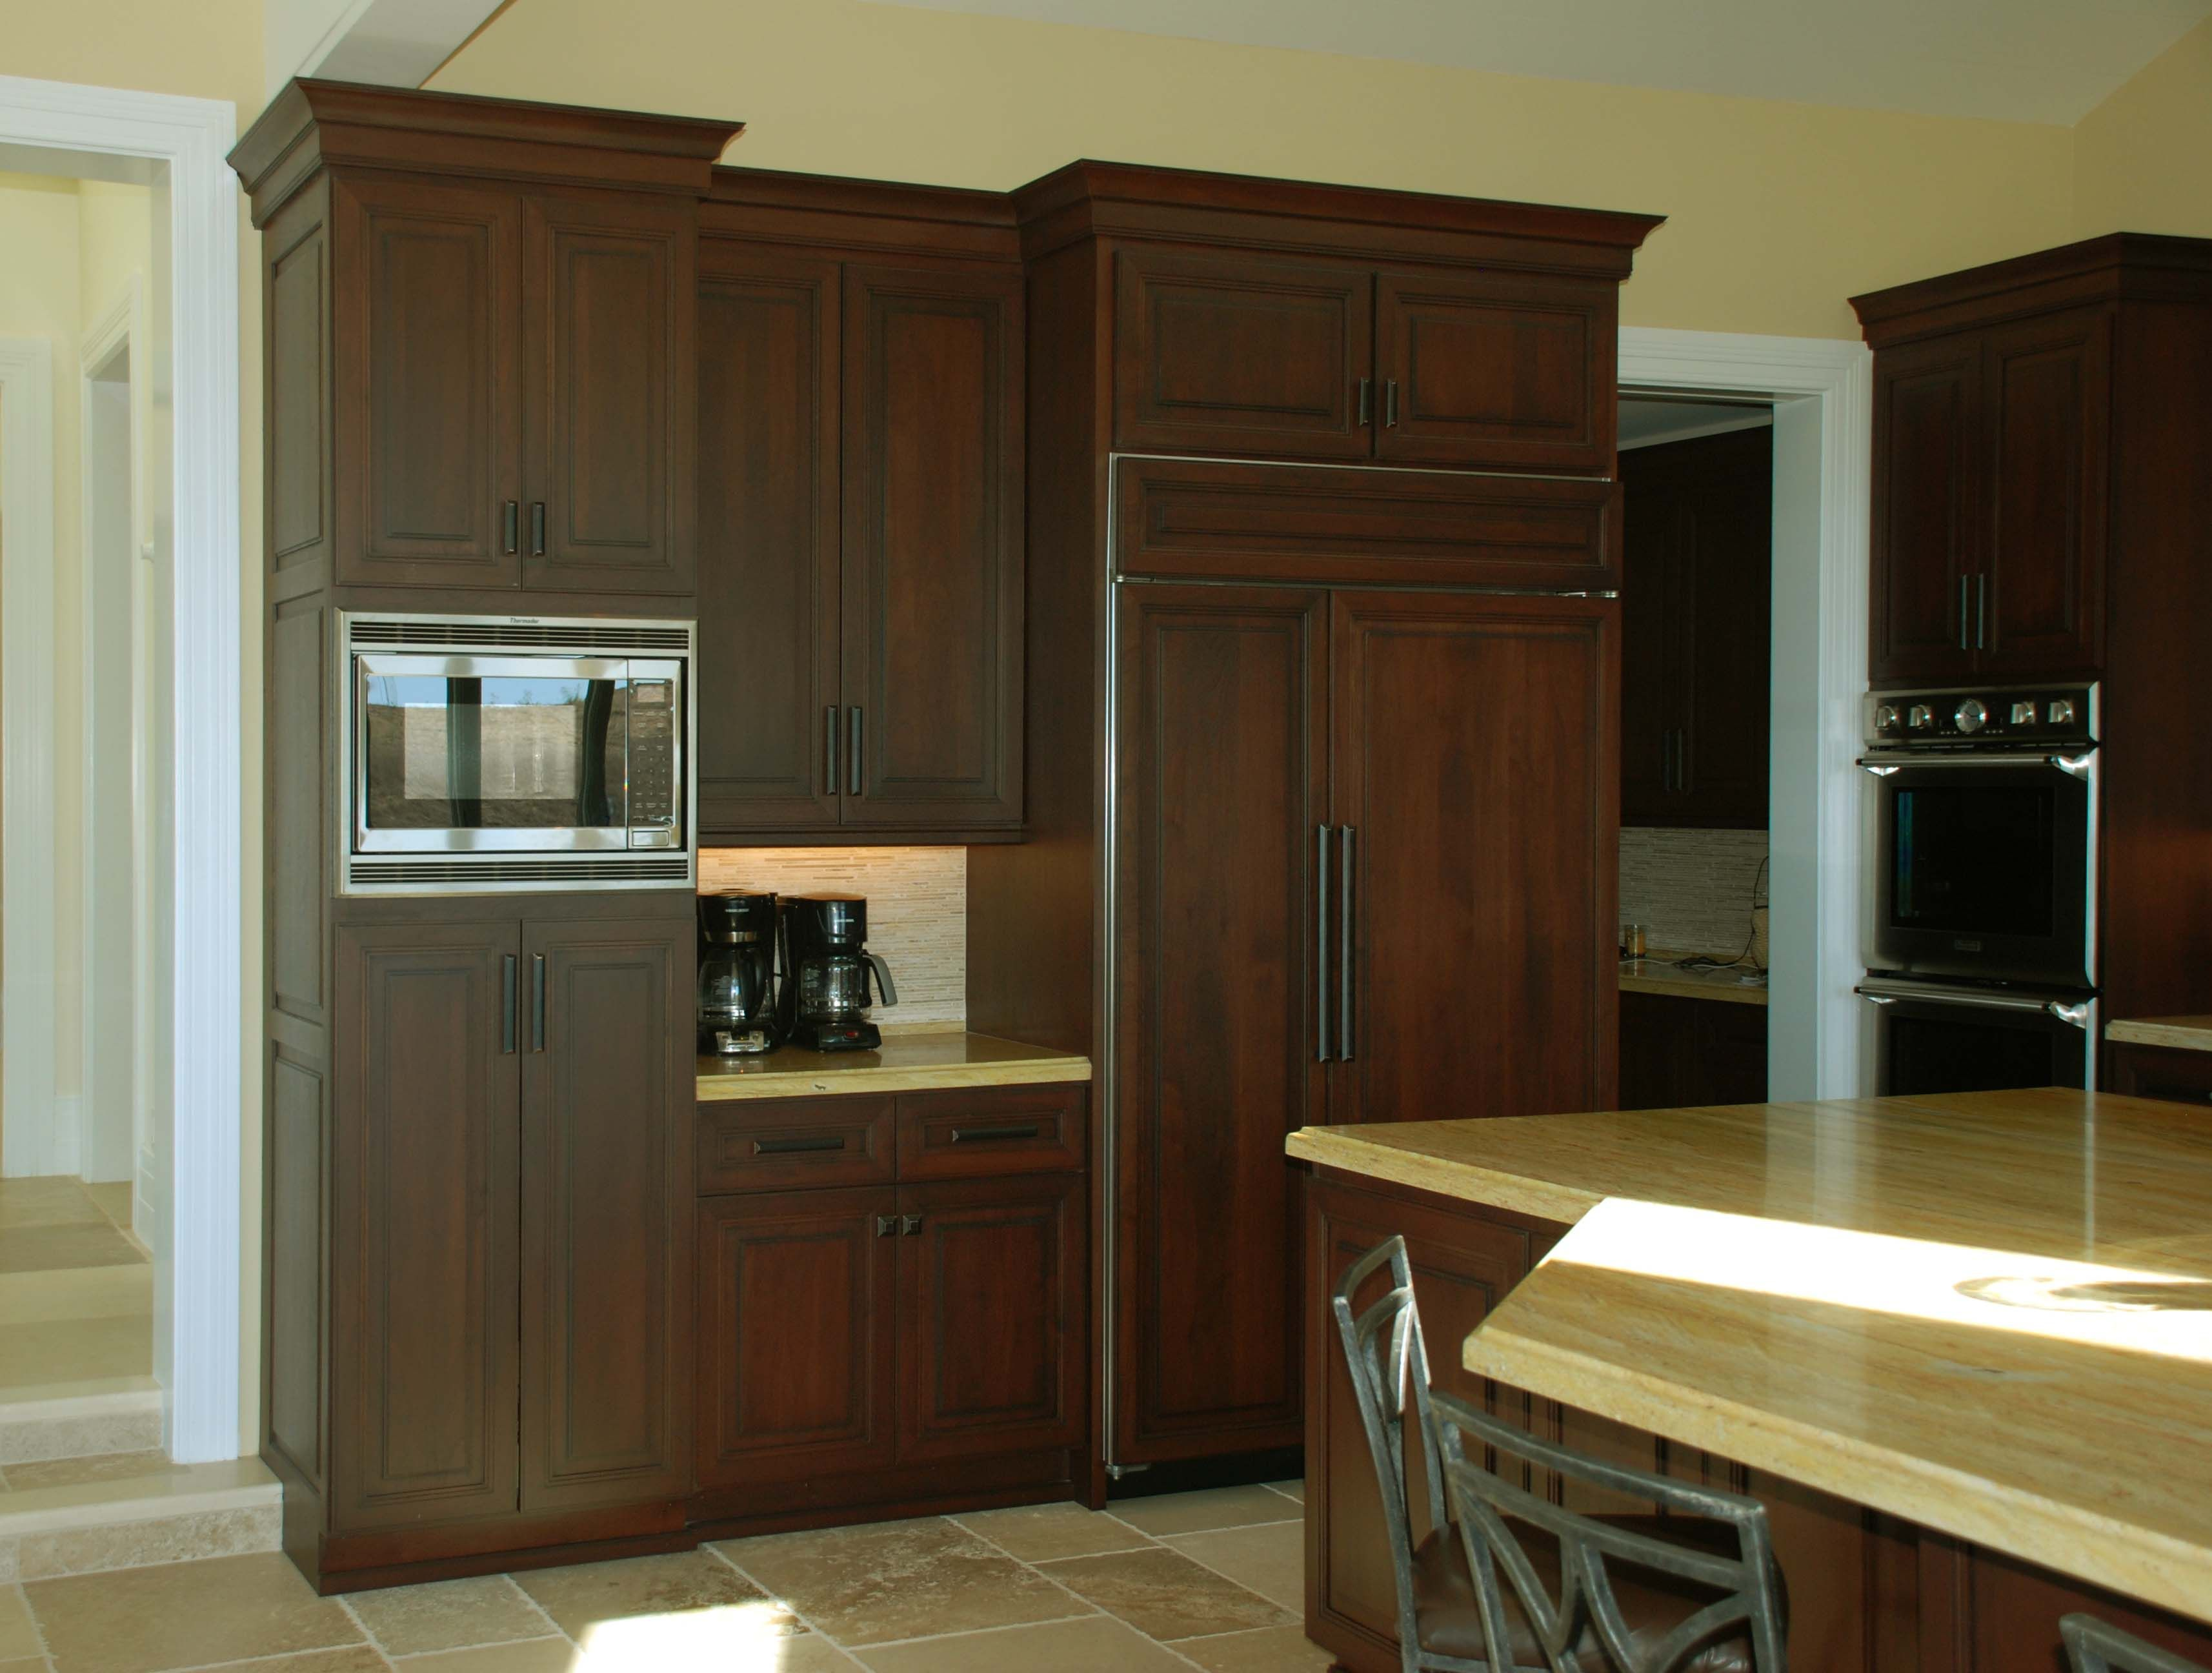 Pin by The Kitchen Collection on Grand kitchen remodel ...